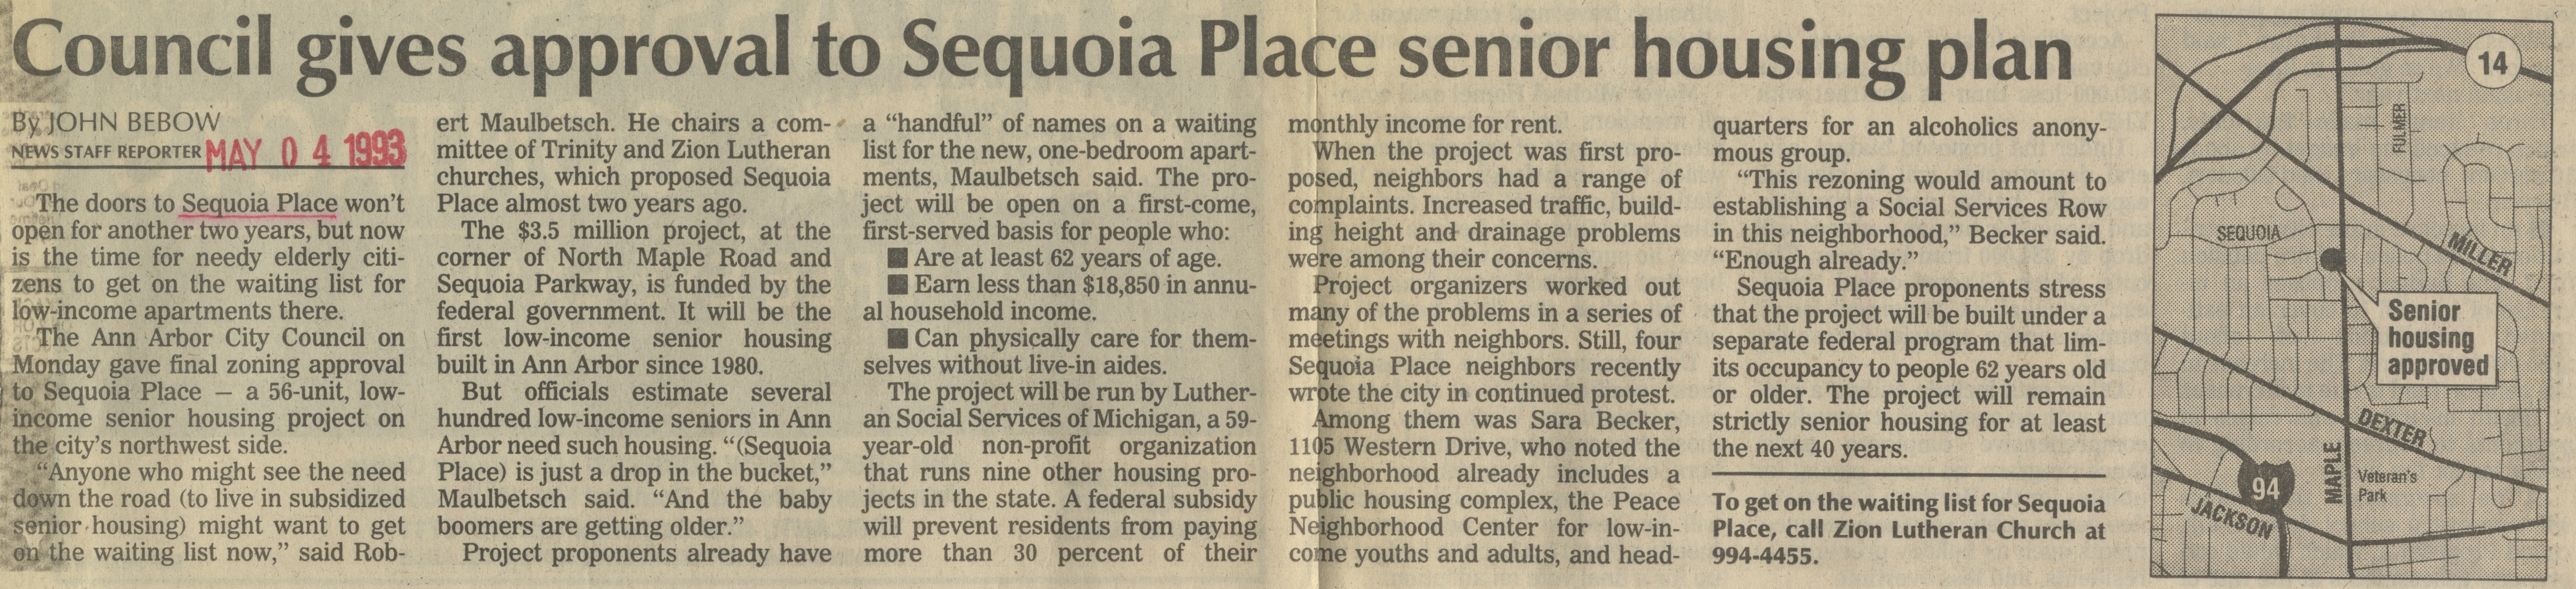 Council Gives Approval To Sequoia Place Senior Housing Plan image